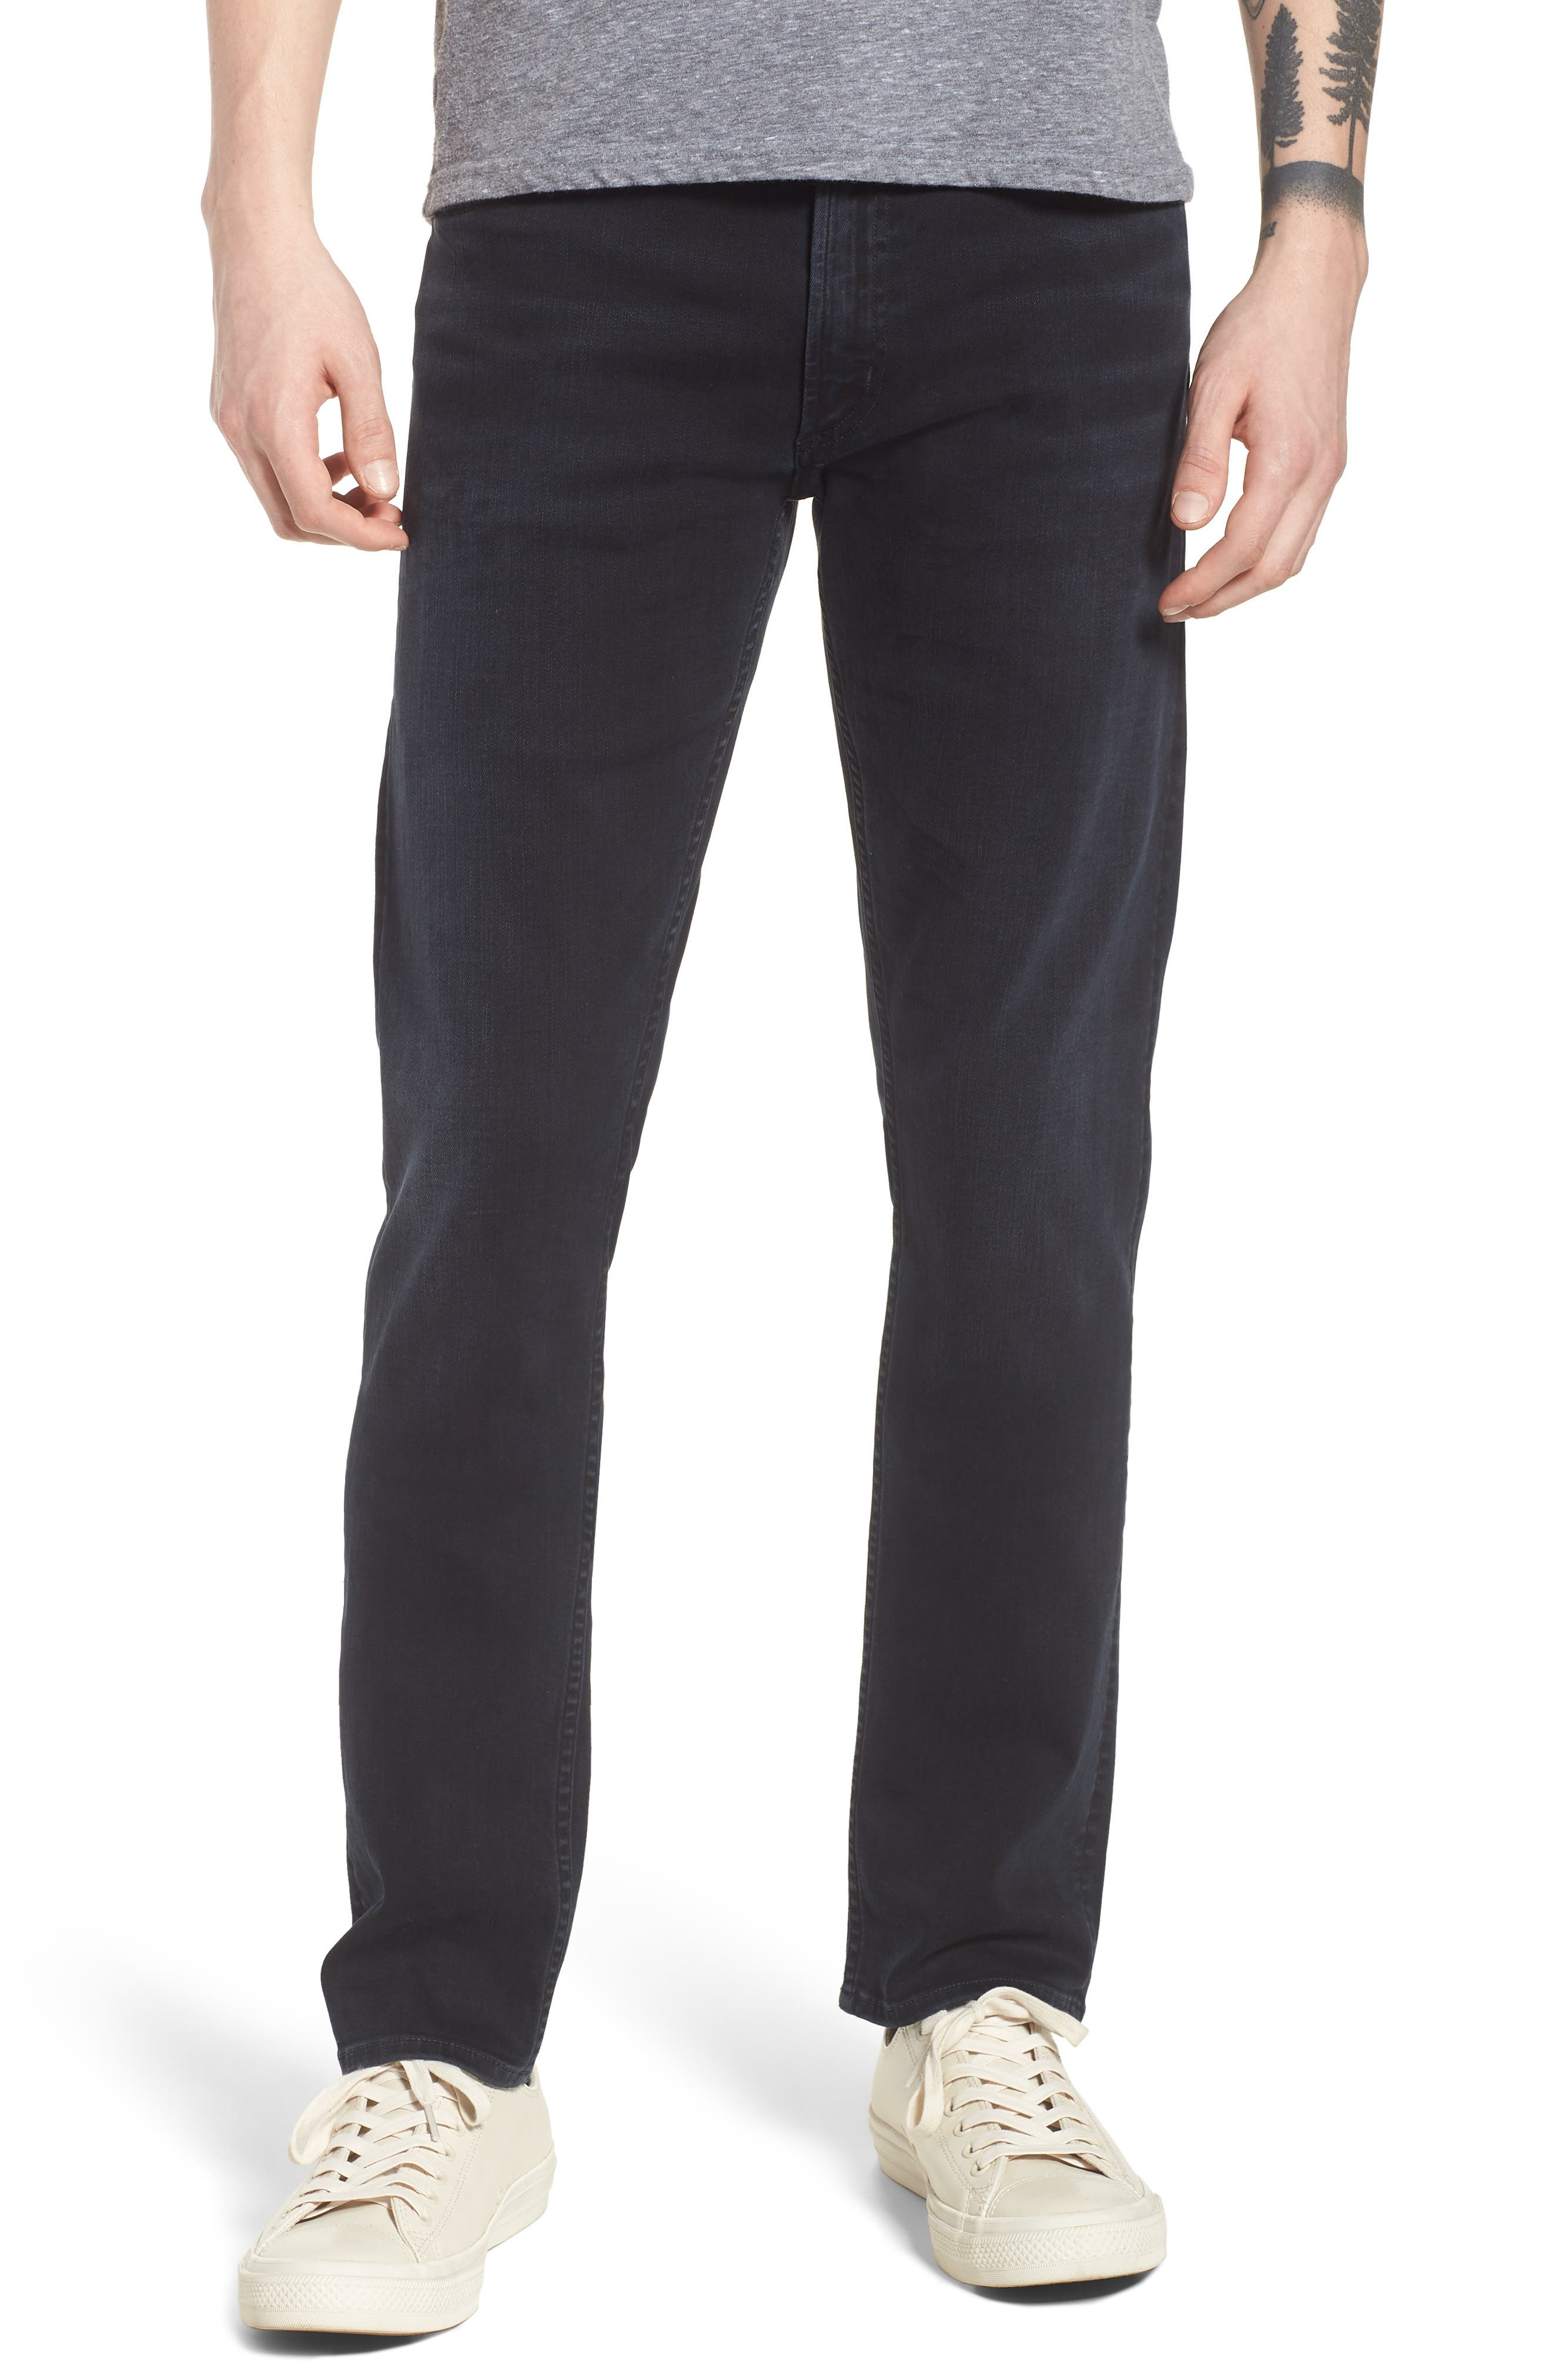 Bowery Slim Fit Jeans,                         Main,                         color, Ink